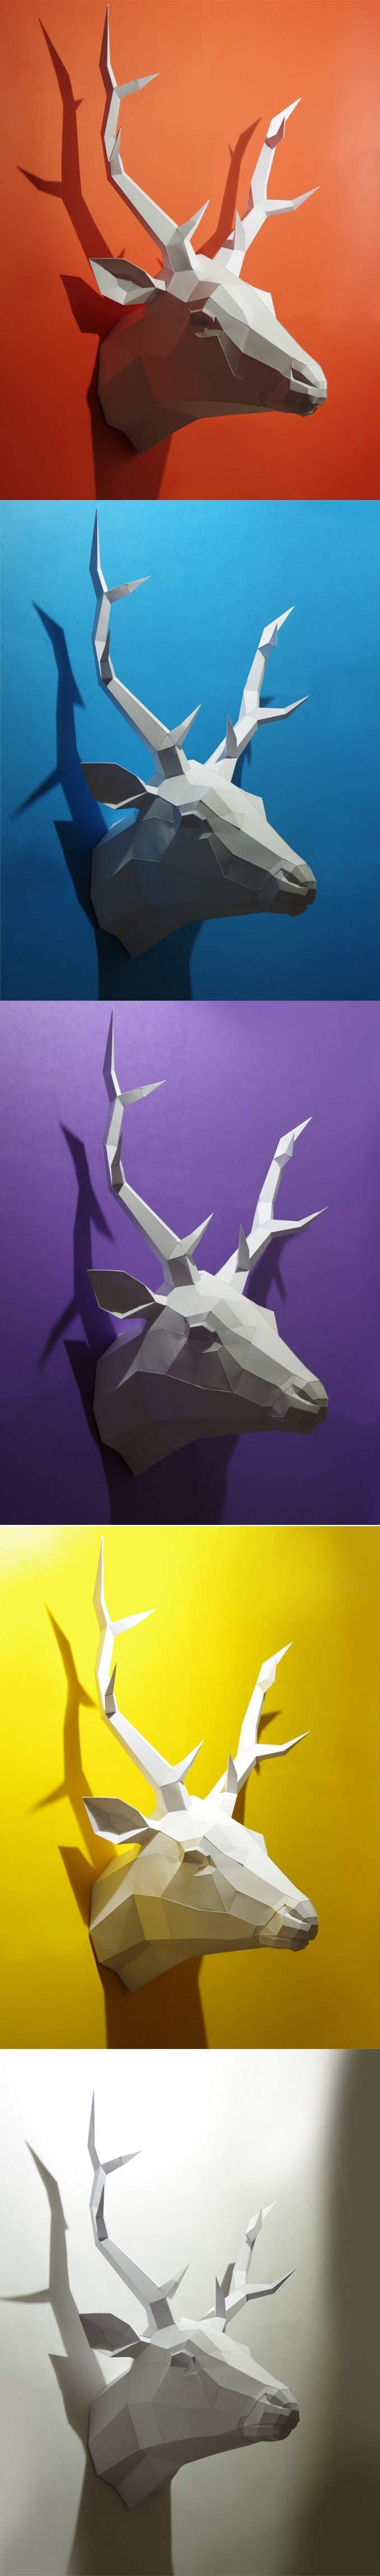 White Stag, couldn't decide on which background he looks best :-)